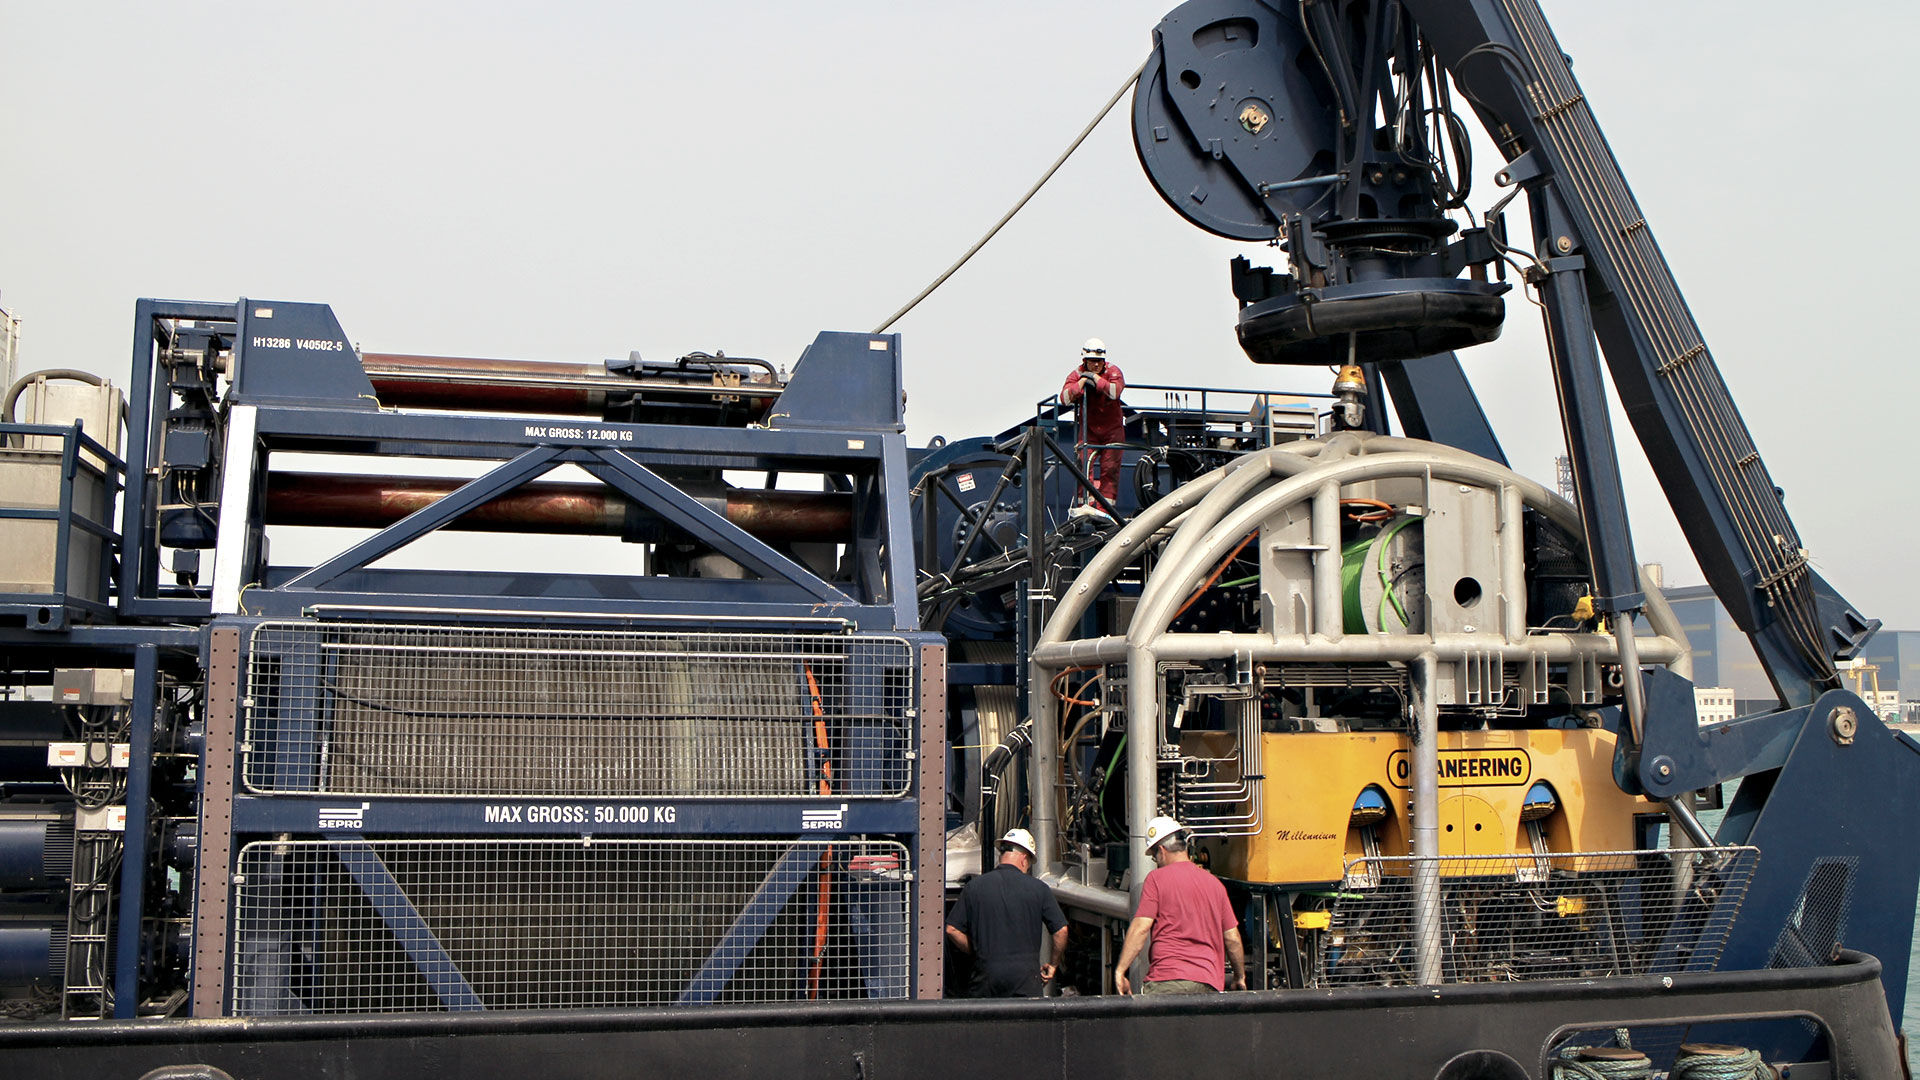 Right Angle Winch : Winches engineering steel hydraulic and automation